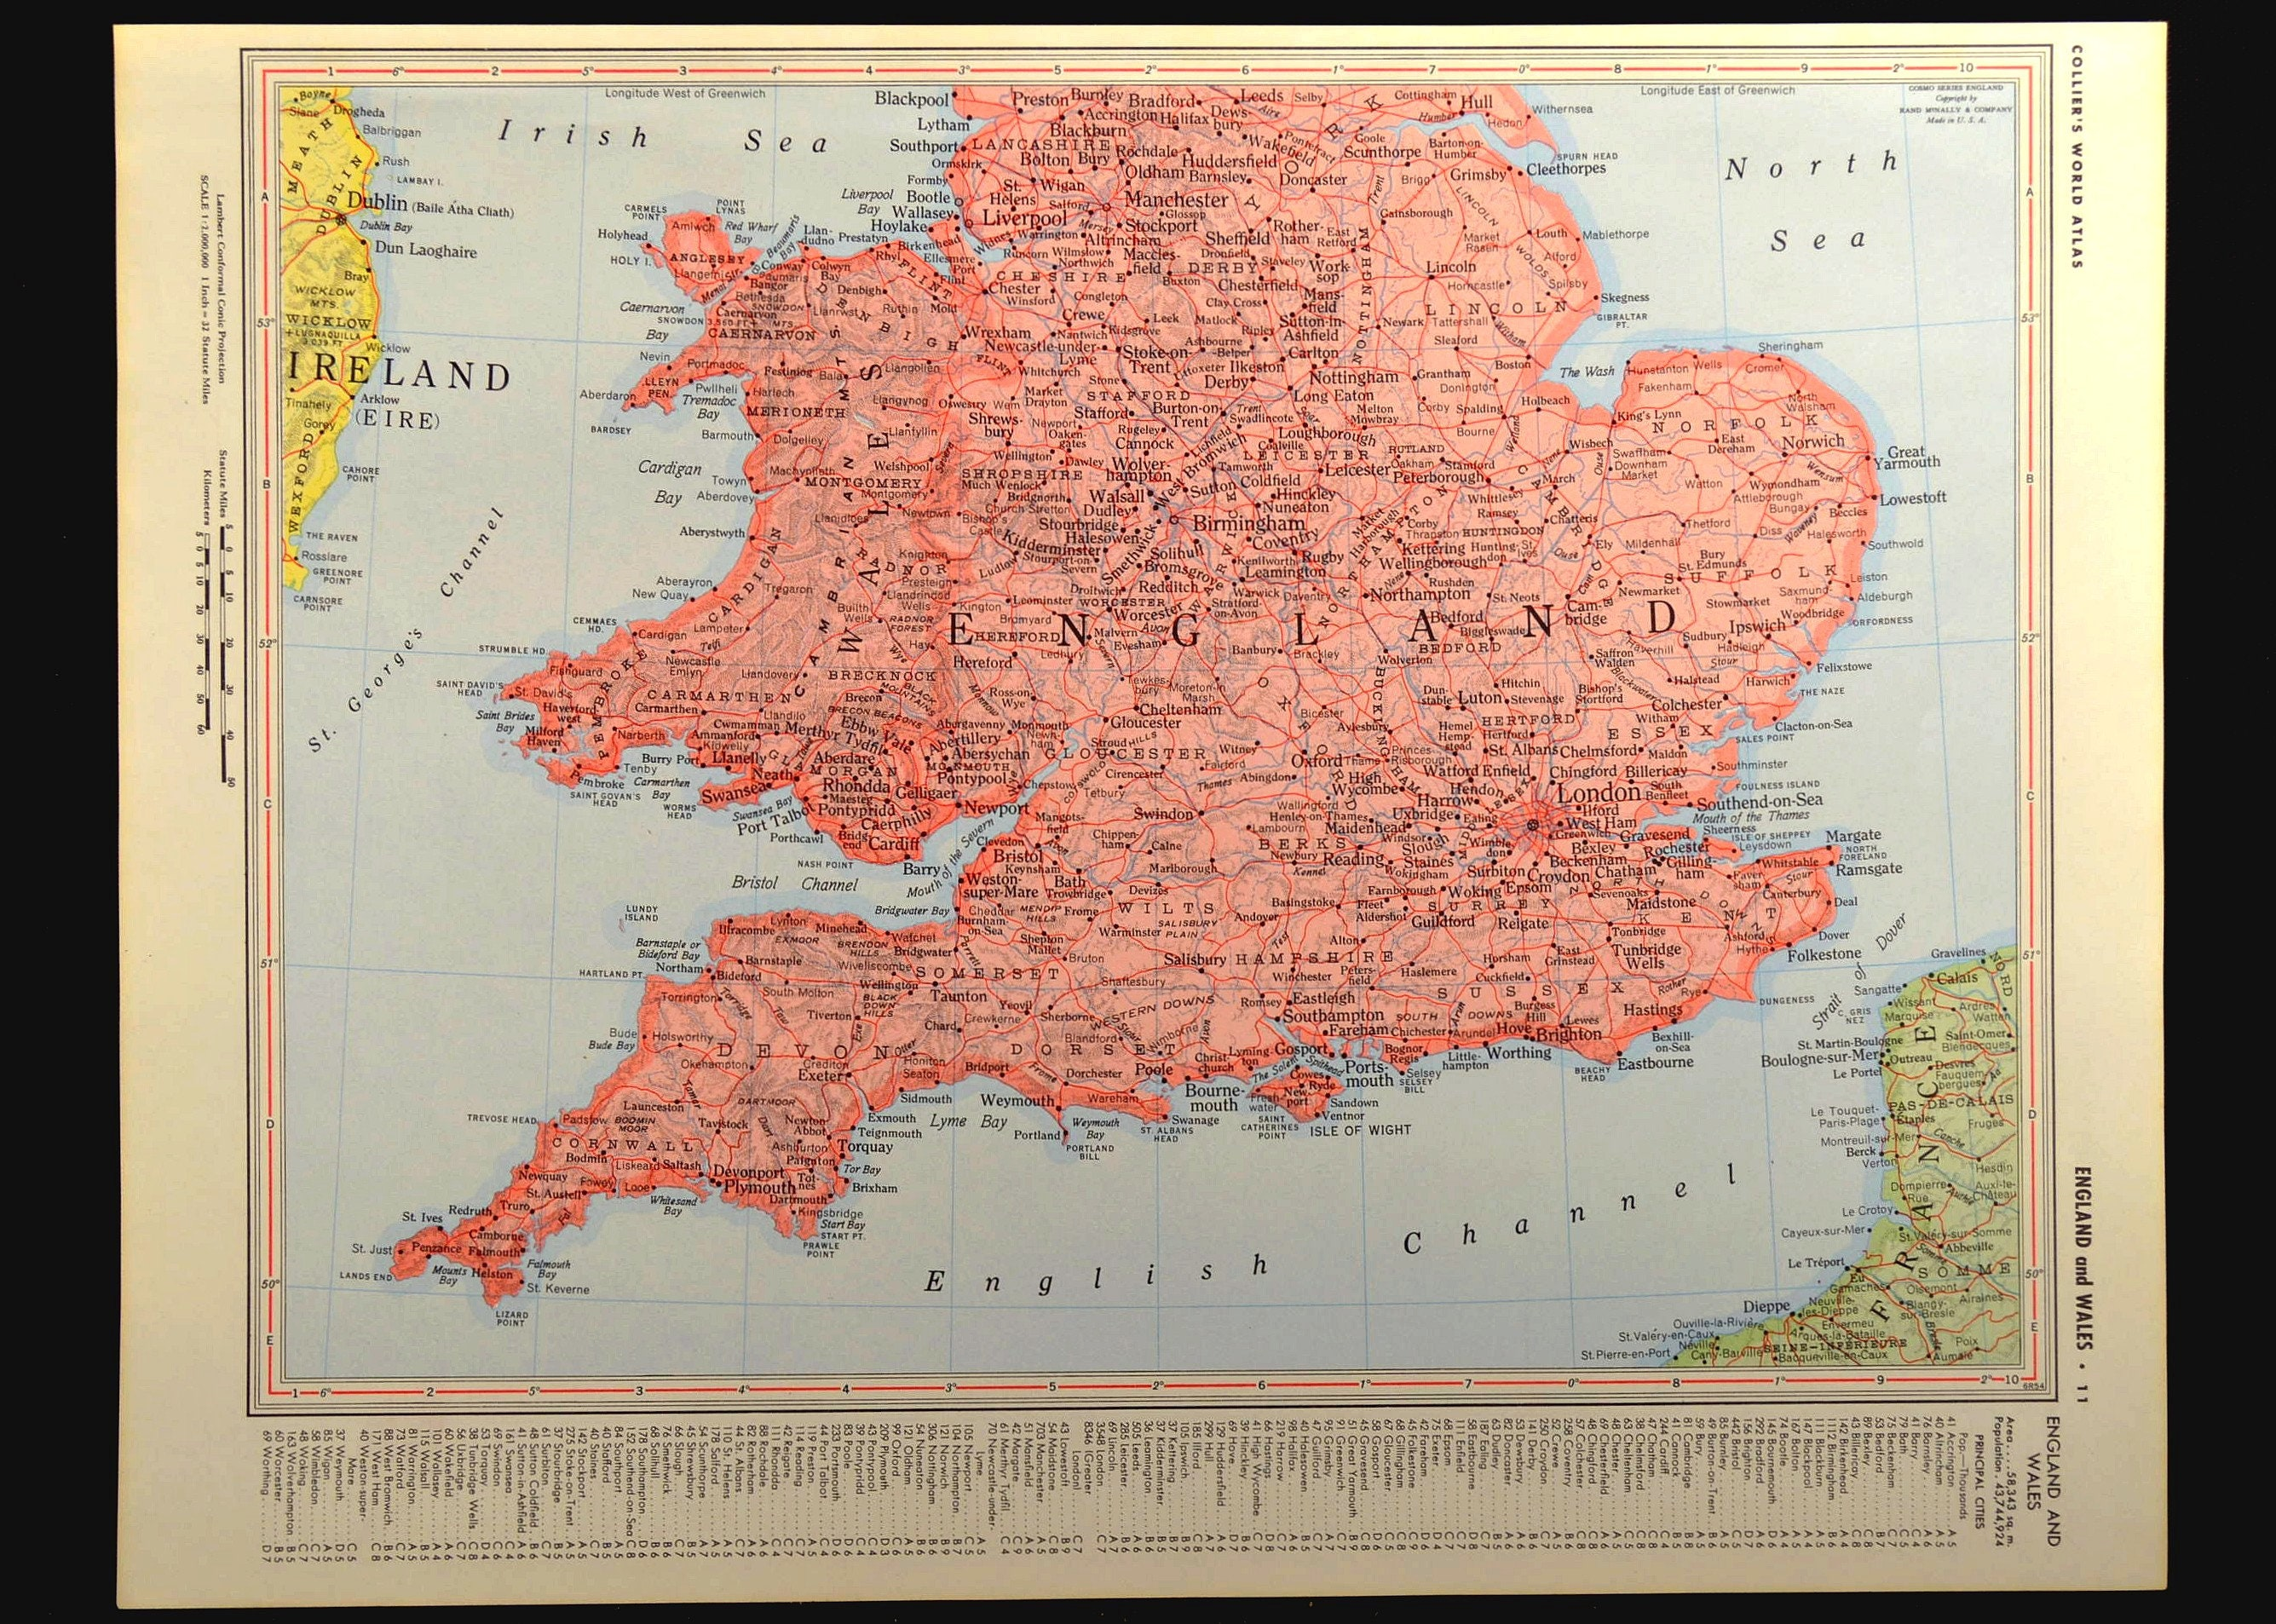 Map Of England Please.England Map Of England Wall Decor Art Vintage Wales Southern South Pink Travel Gift Wedding Gift Idea For Him Print